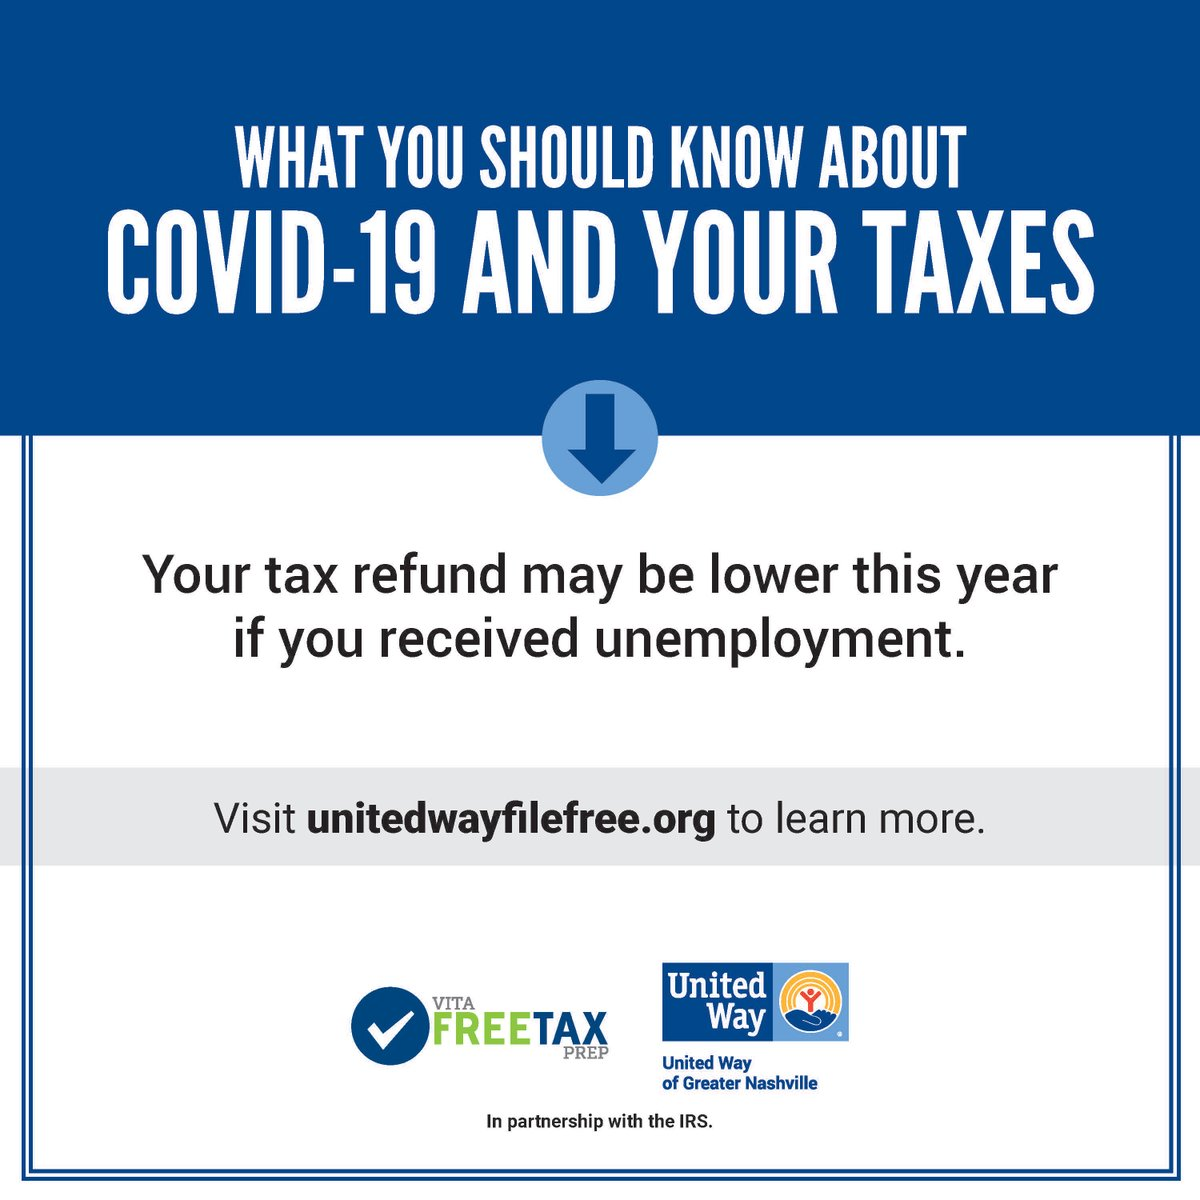 #DidYouKnow: If you received unemployment benefits in 2020 your tax refund may lower this year. Prepare yourself this tax season. Visit  or call 615-748-3620 for free financial counseling, or visit  for free tax prep.